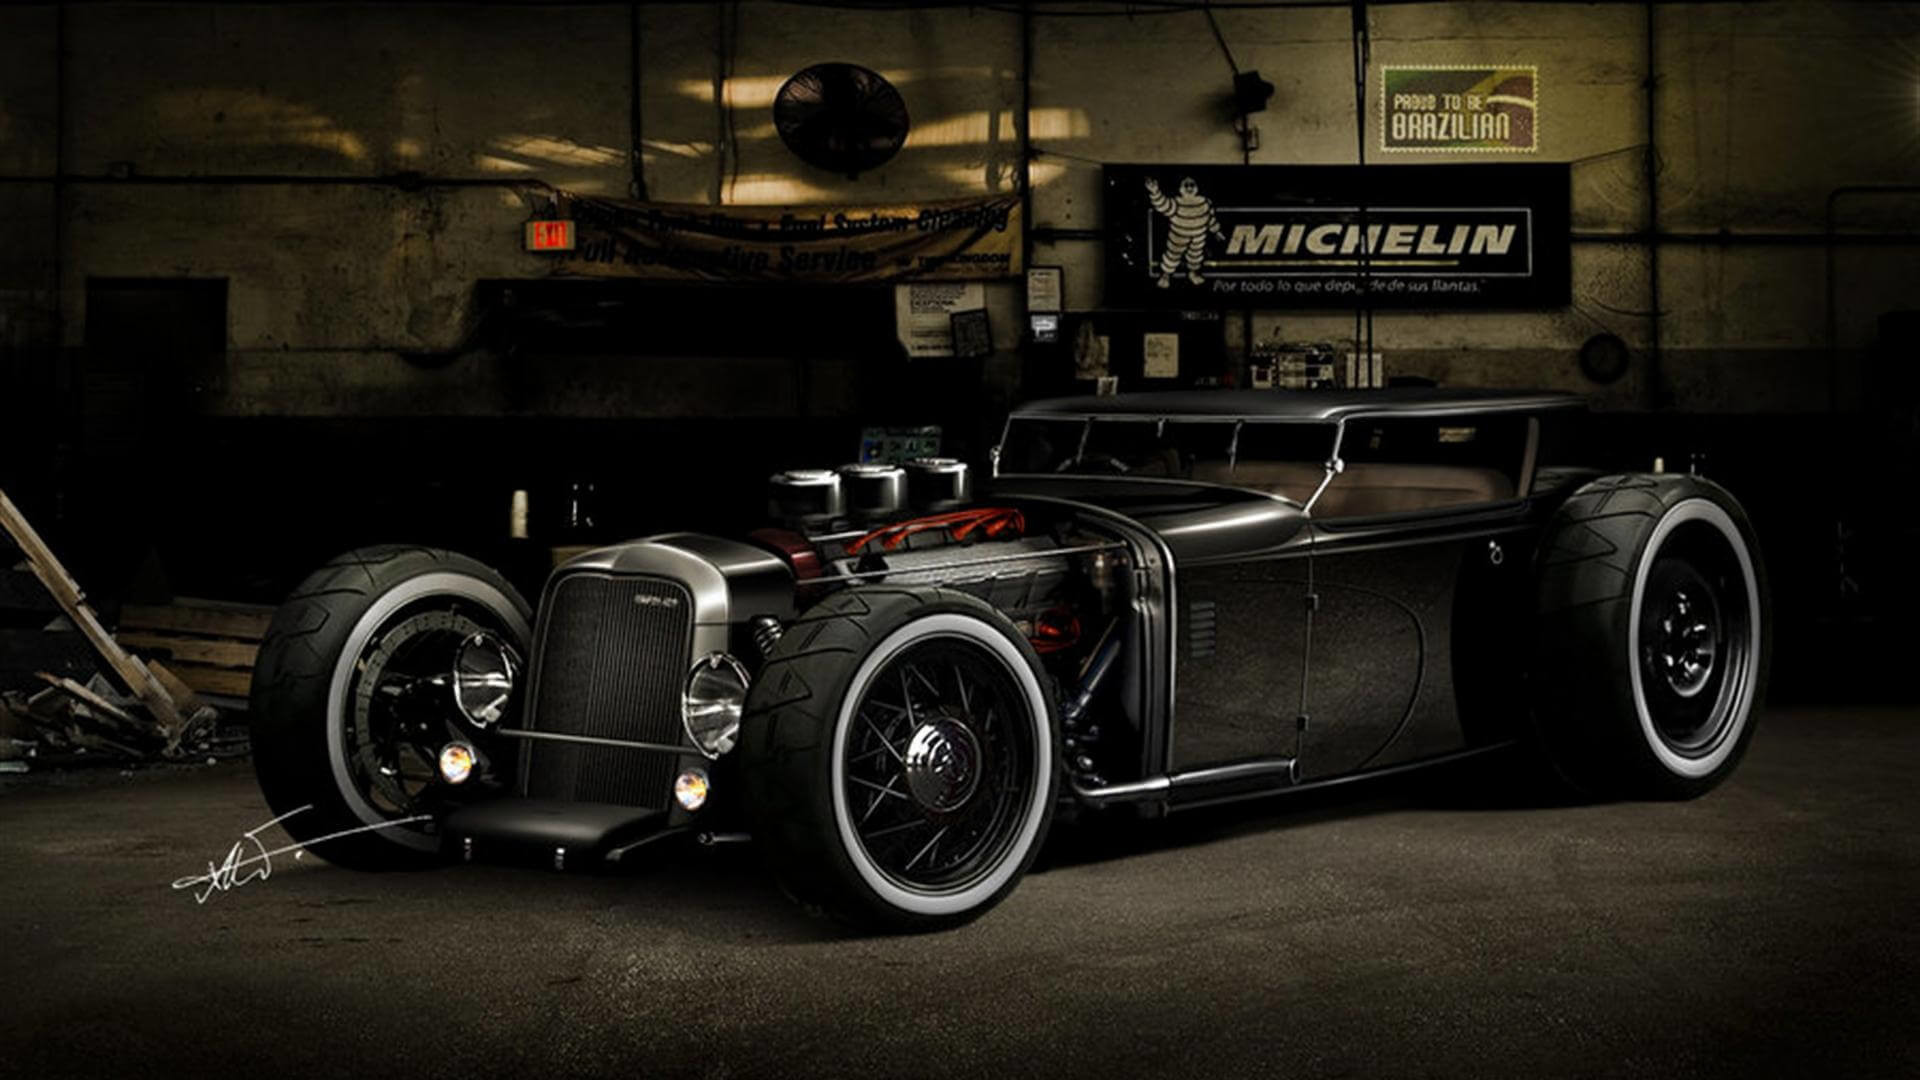 Wallpaper Of Old Cars 71 Images